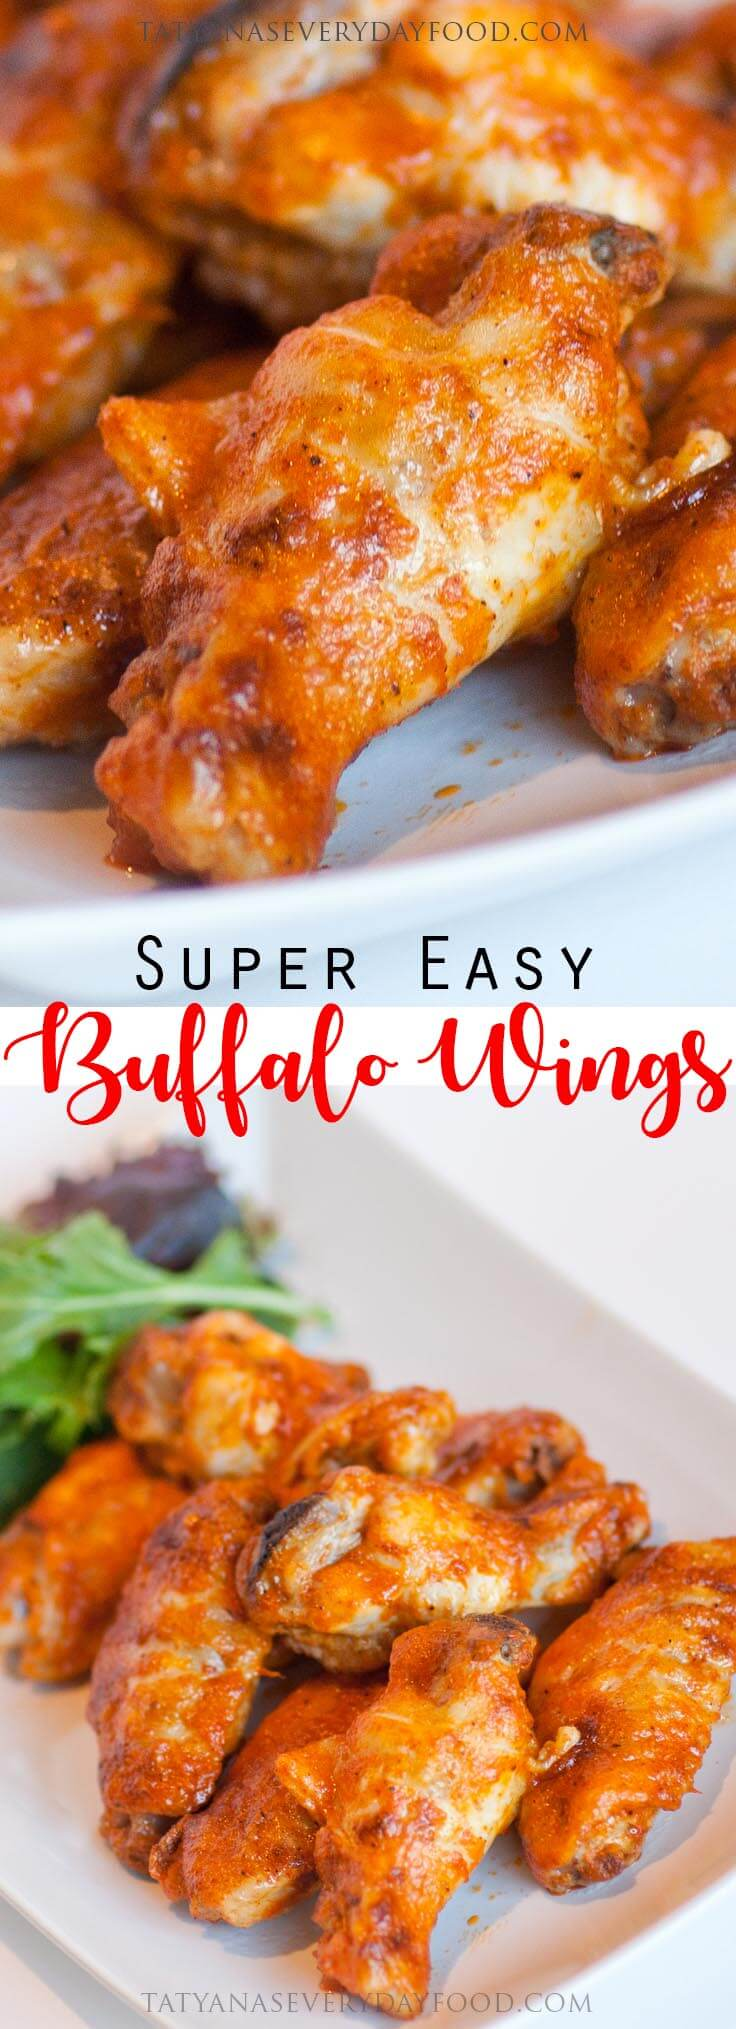 Try My Delicious Teriyaki Party Wings With Home Made Teriyaki Sauce Http Tatyanaseverydayfood Com Recipe Items Teriyaki Chicken Wings